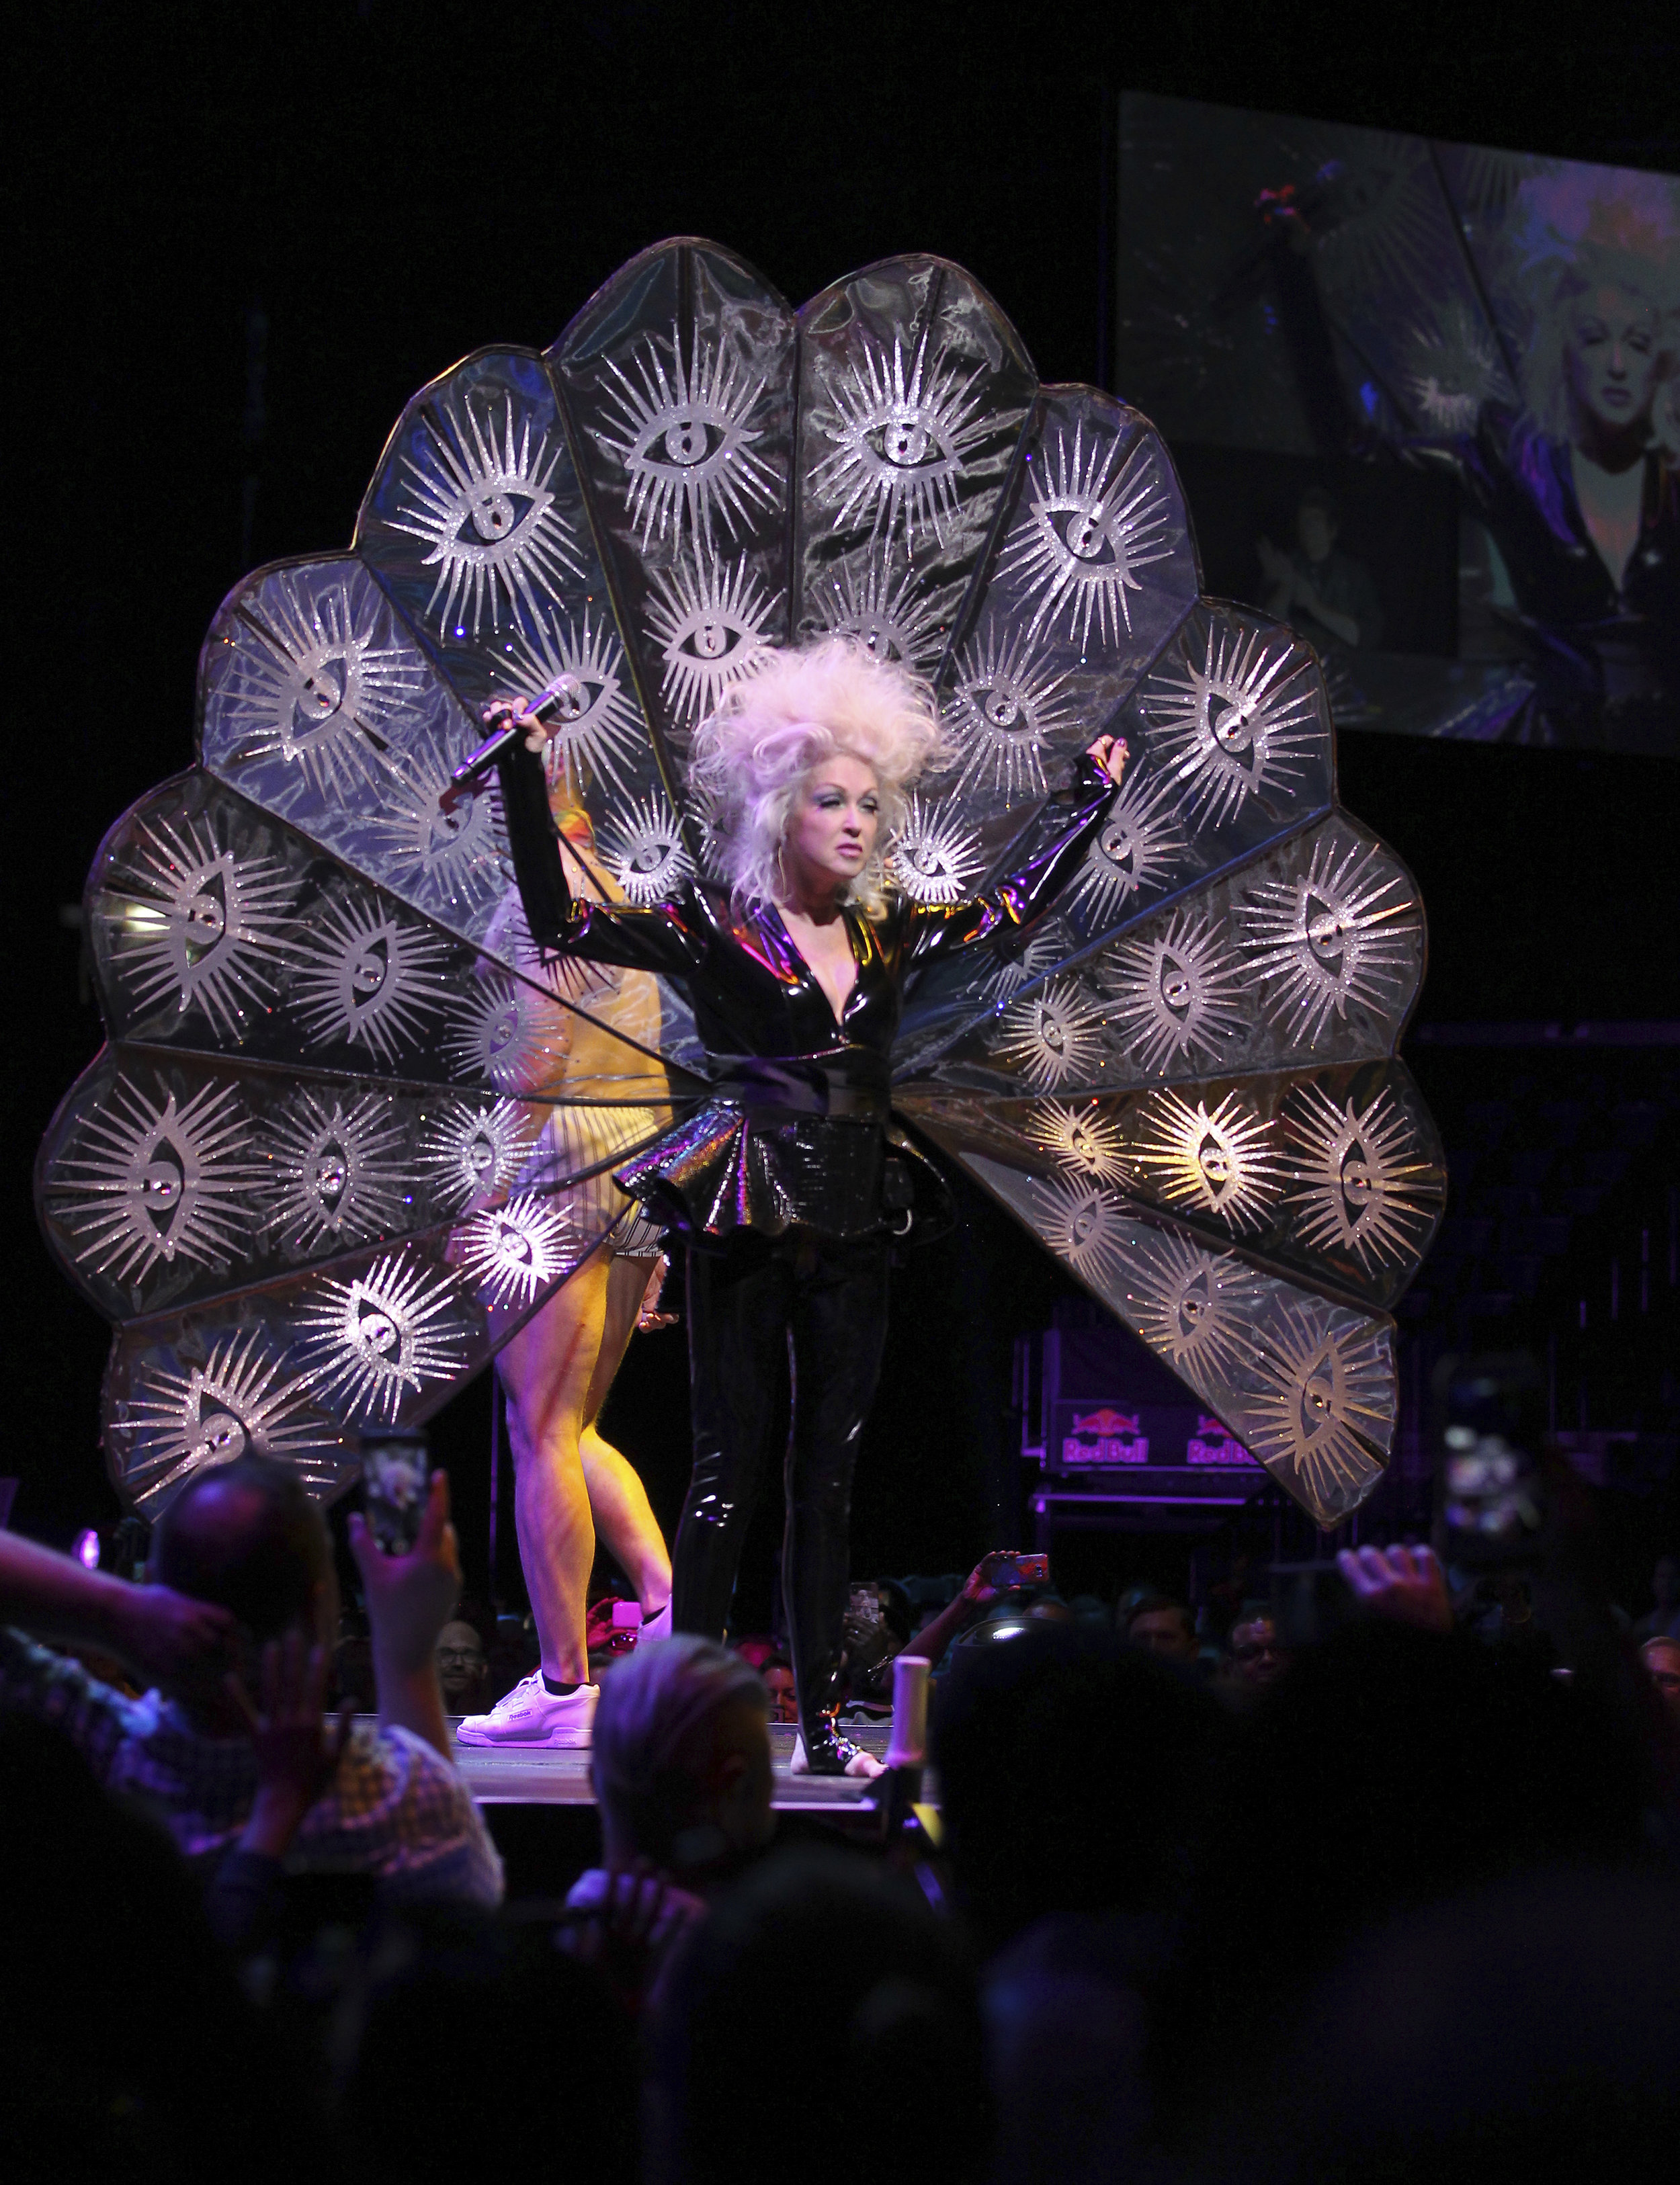 Cyndi Lauper performing at WorldPride NYC 2019 in Brooklyn. Photo by Donald Traill/Invision/AP.